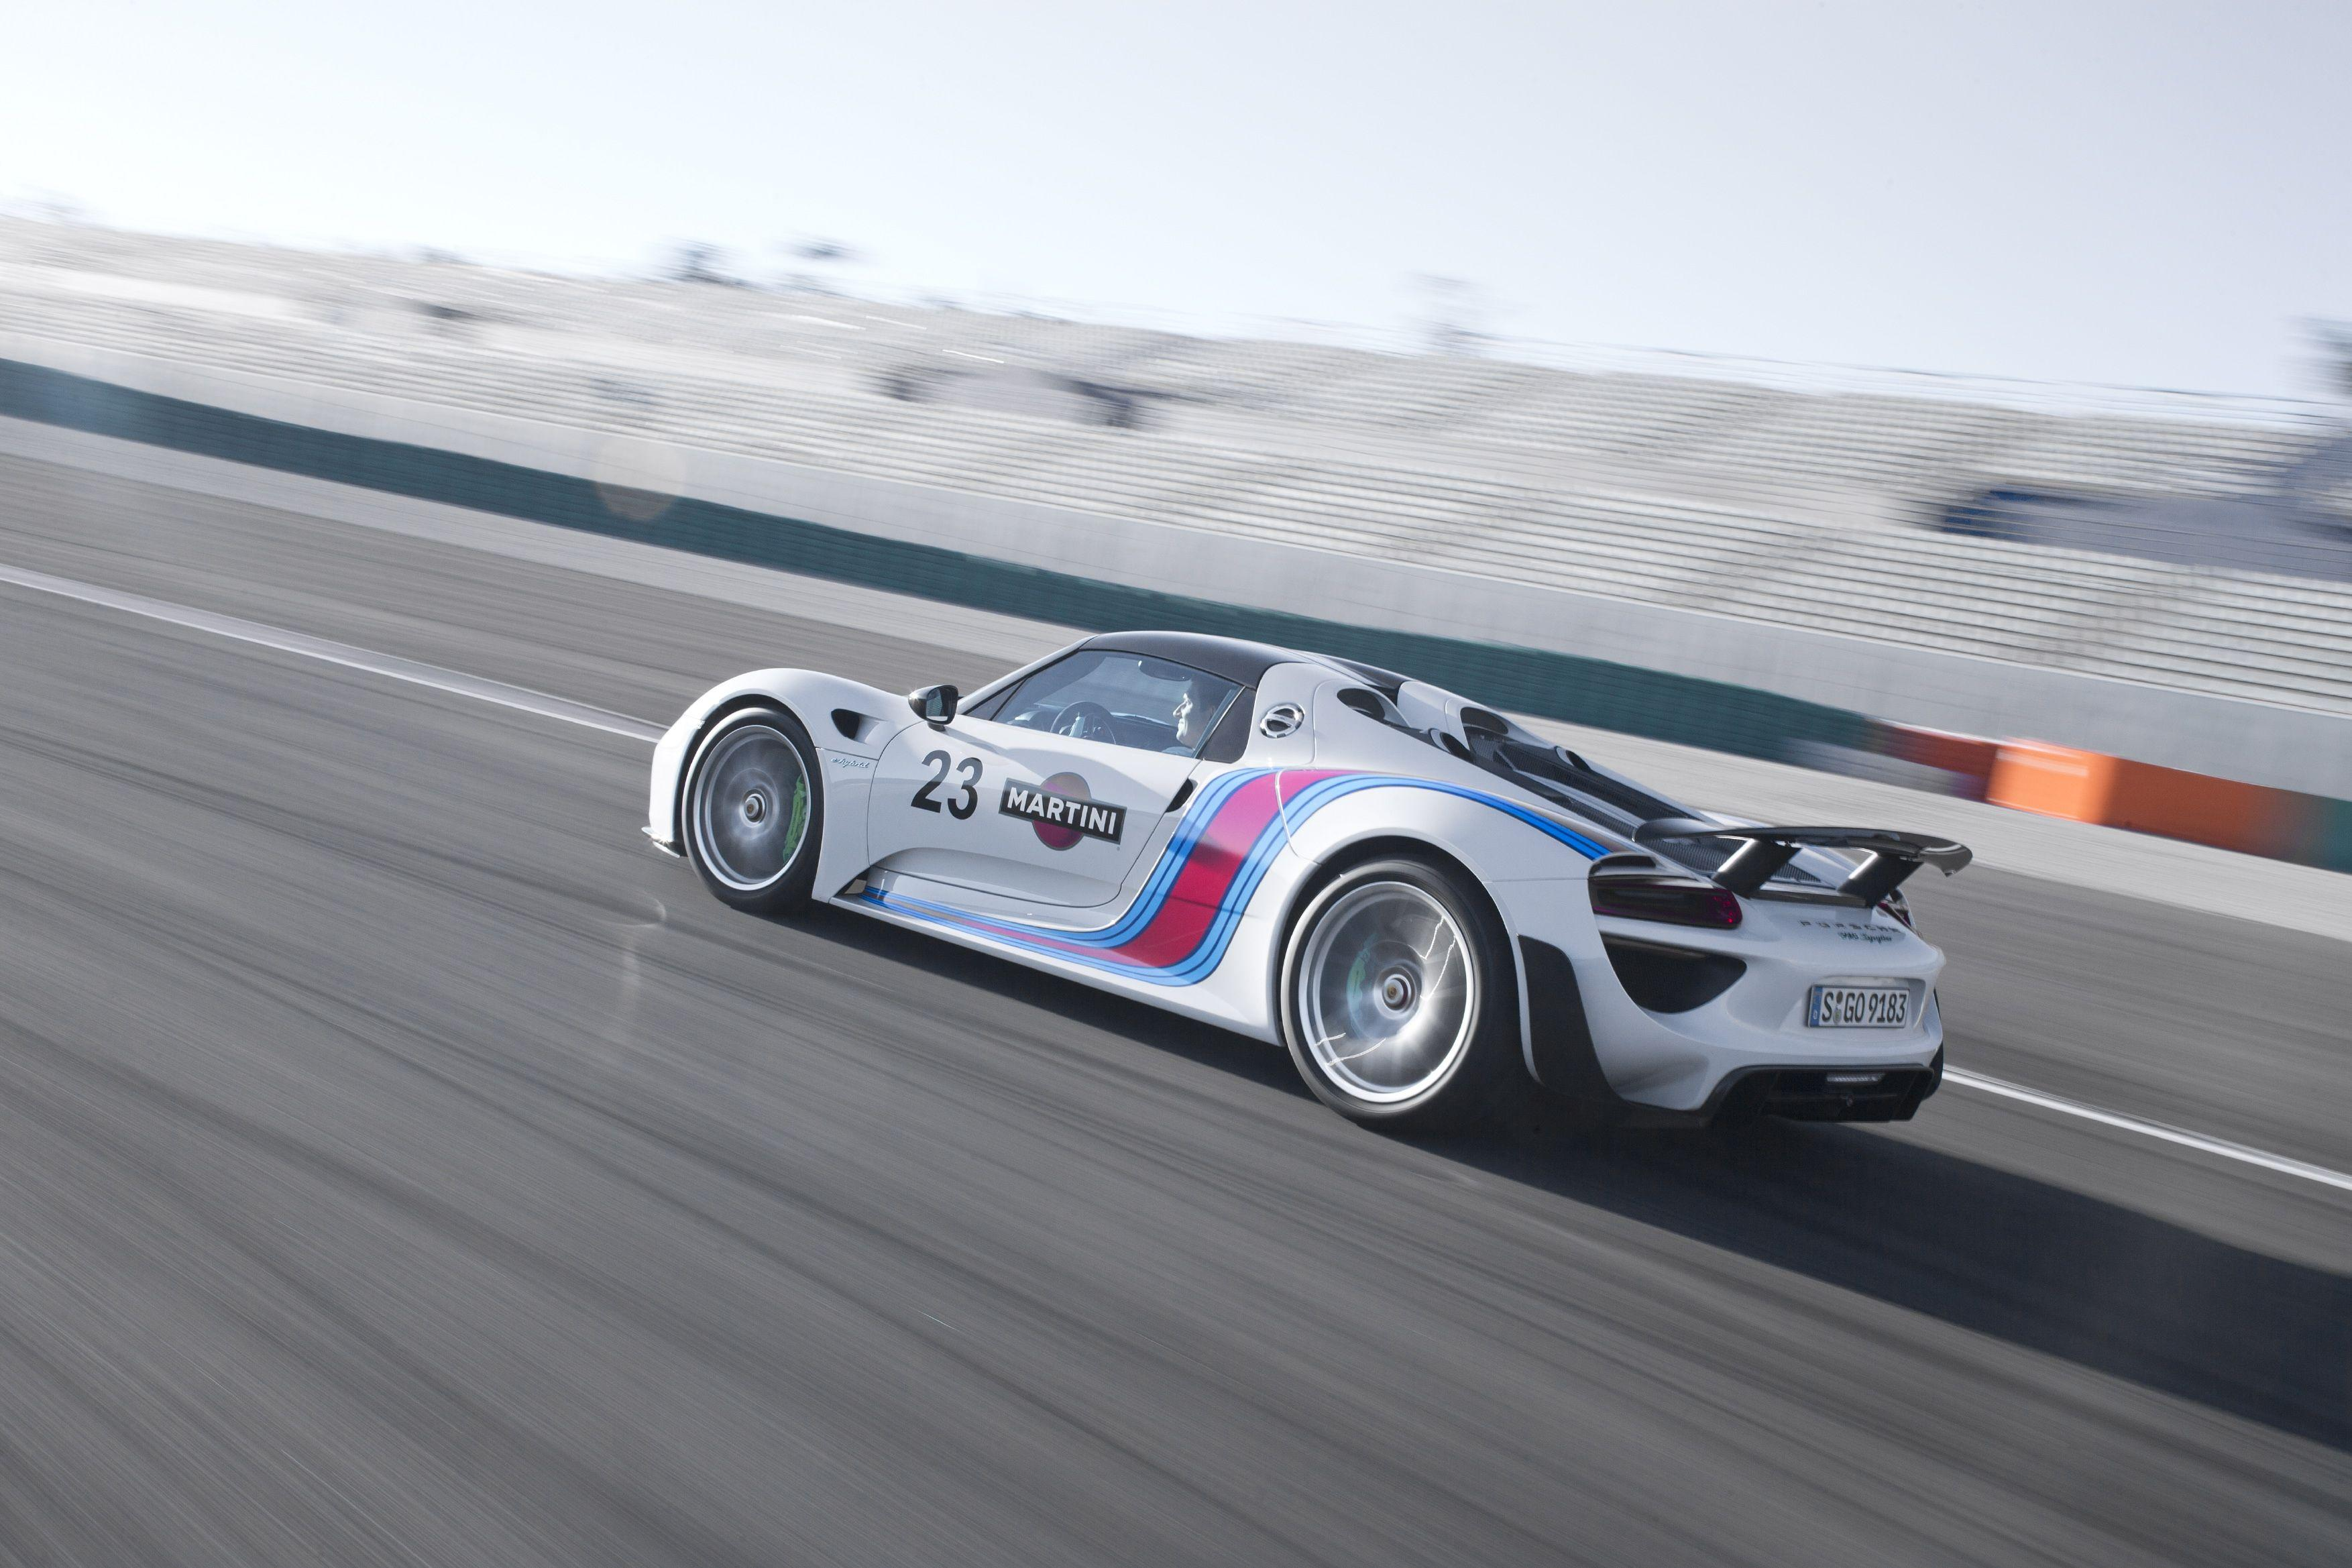 Wallpapers Wednesday: Porsche 918 Spyder